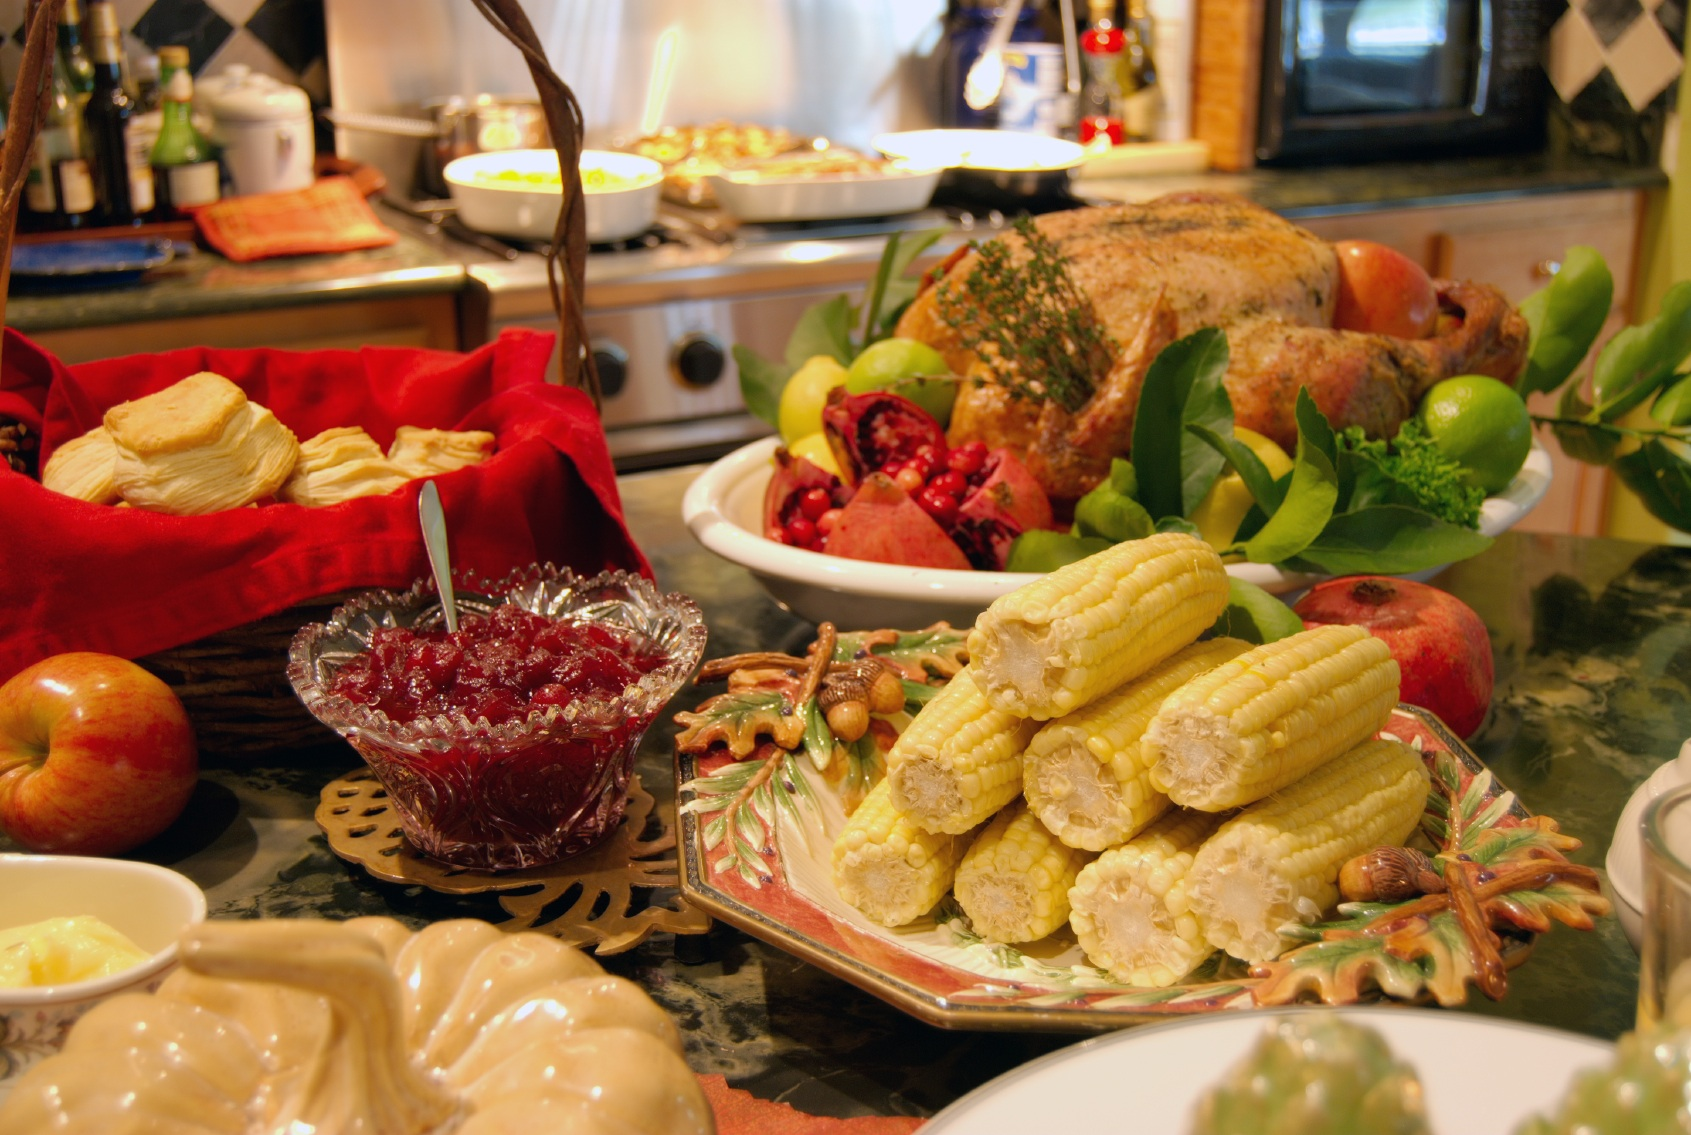 thanksgiving food pictures - 842×564